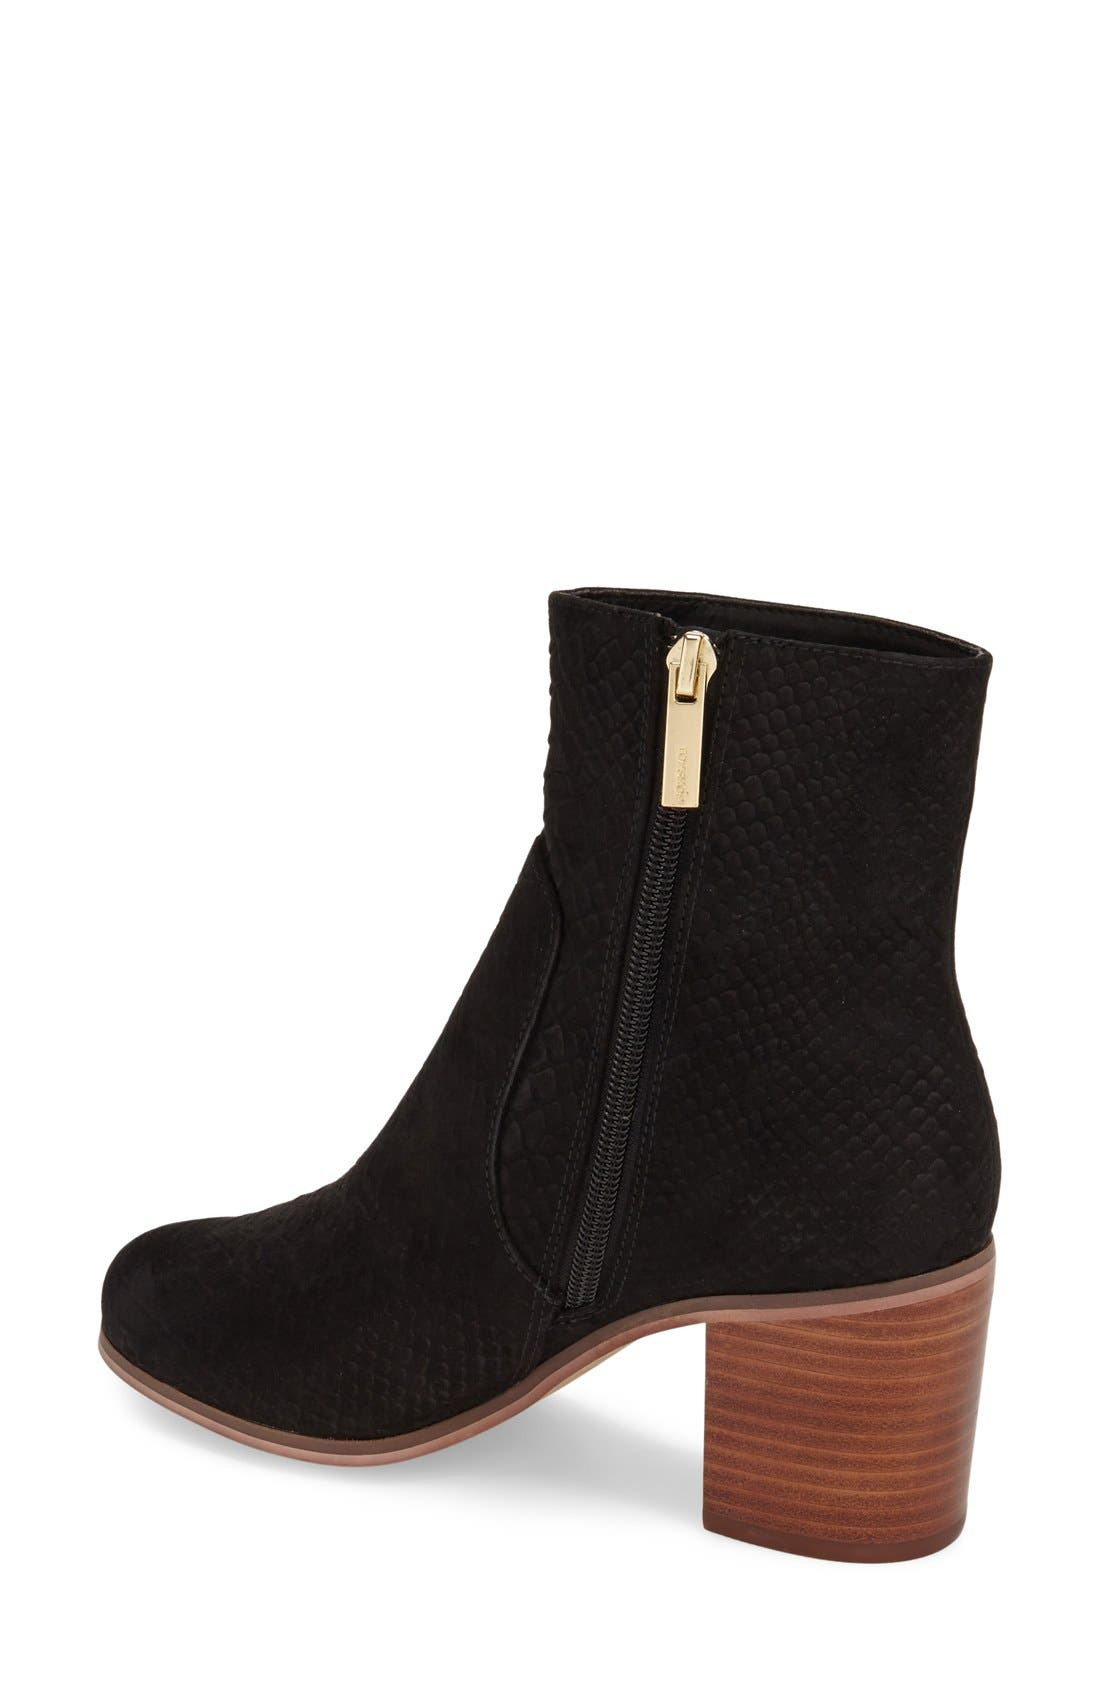 Alternate Image 2  - Topshop 'Bless' Ankle Bootie (Women)